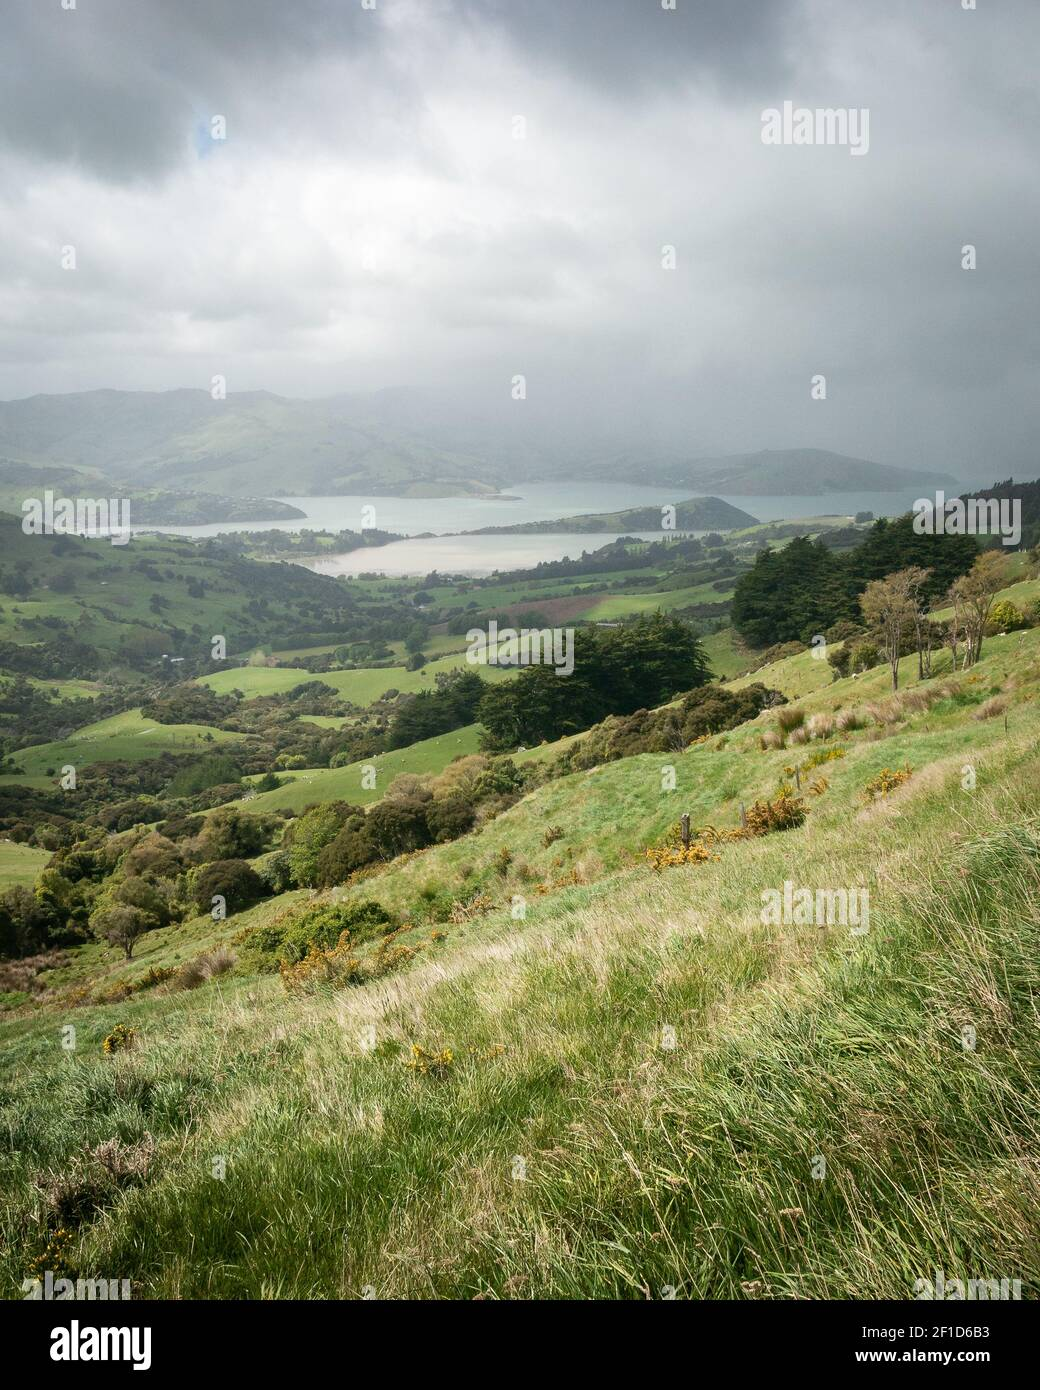 Storm approaching a valley with green rolling hills, portrait shot made on Banks Peninsula near Christchurch, New Zealand Stock Photo